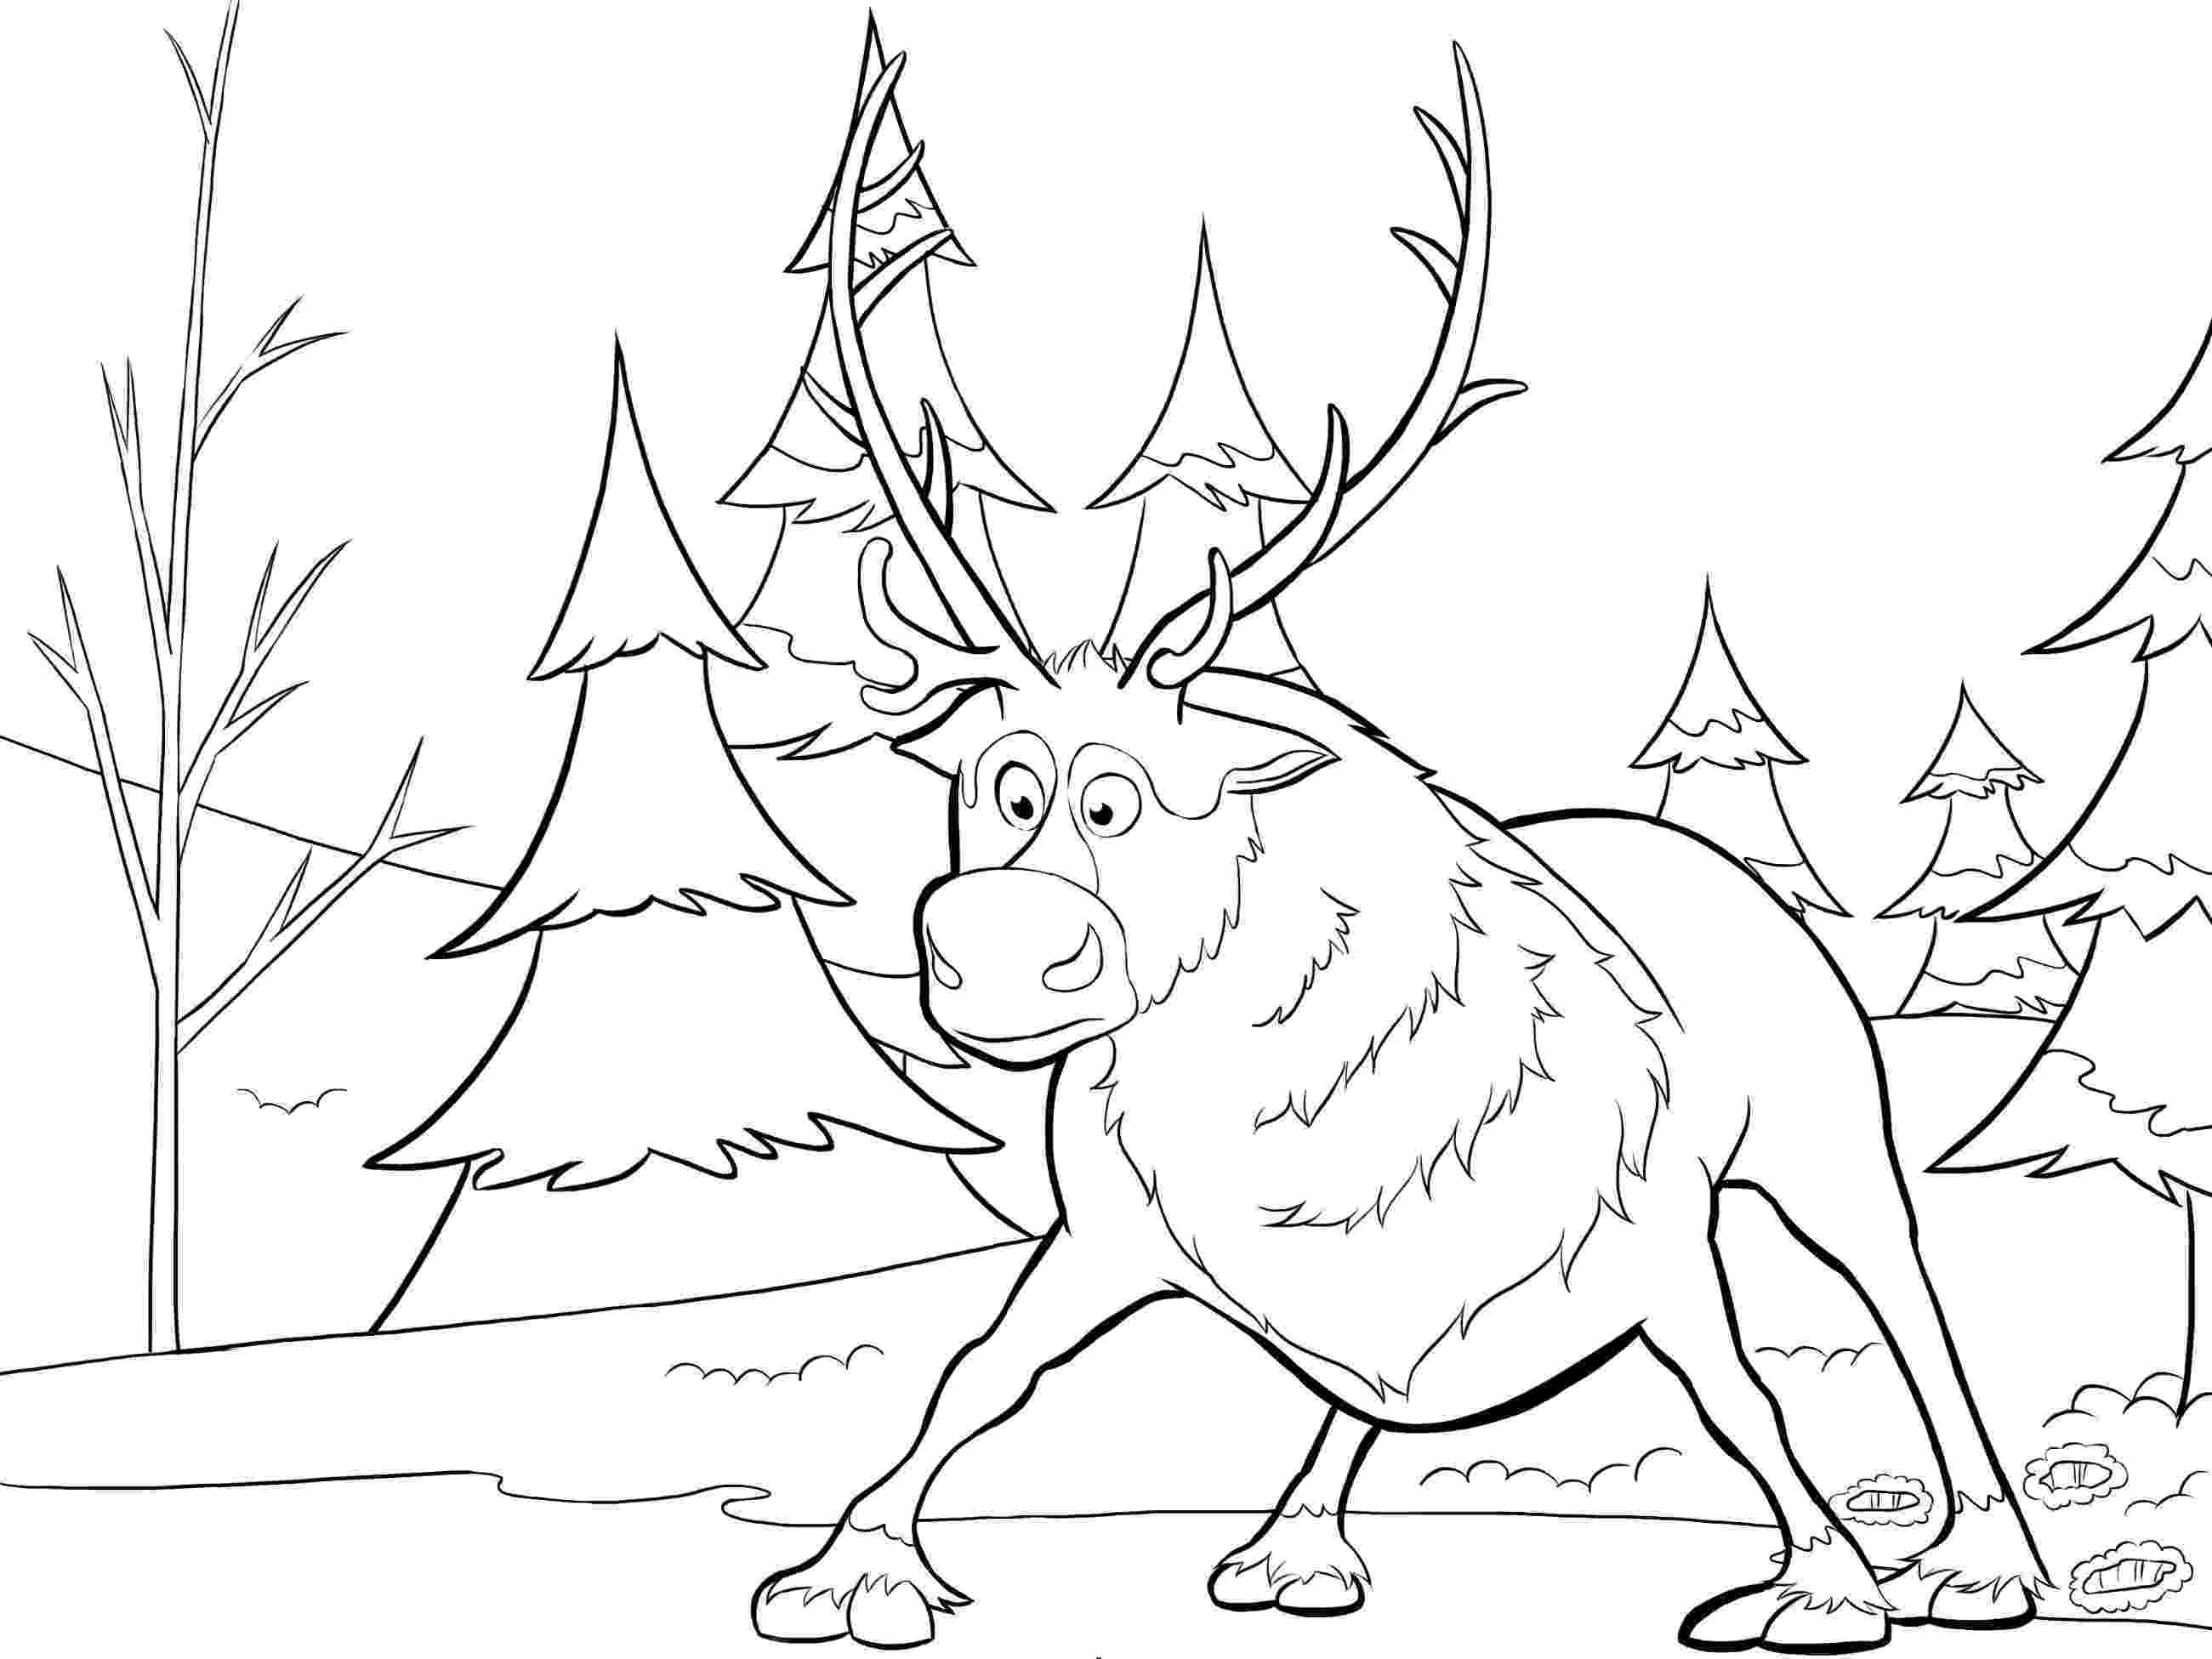 pictures to color frozen free printable frozen coloring pages for kids best to frozen color pictures